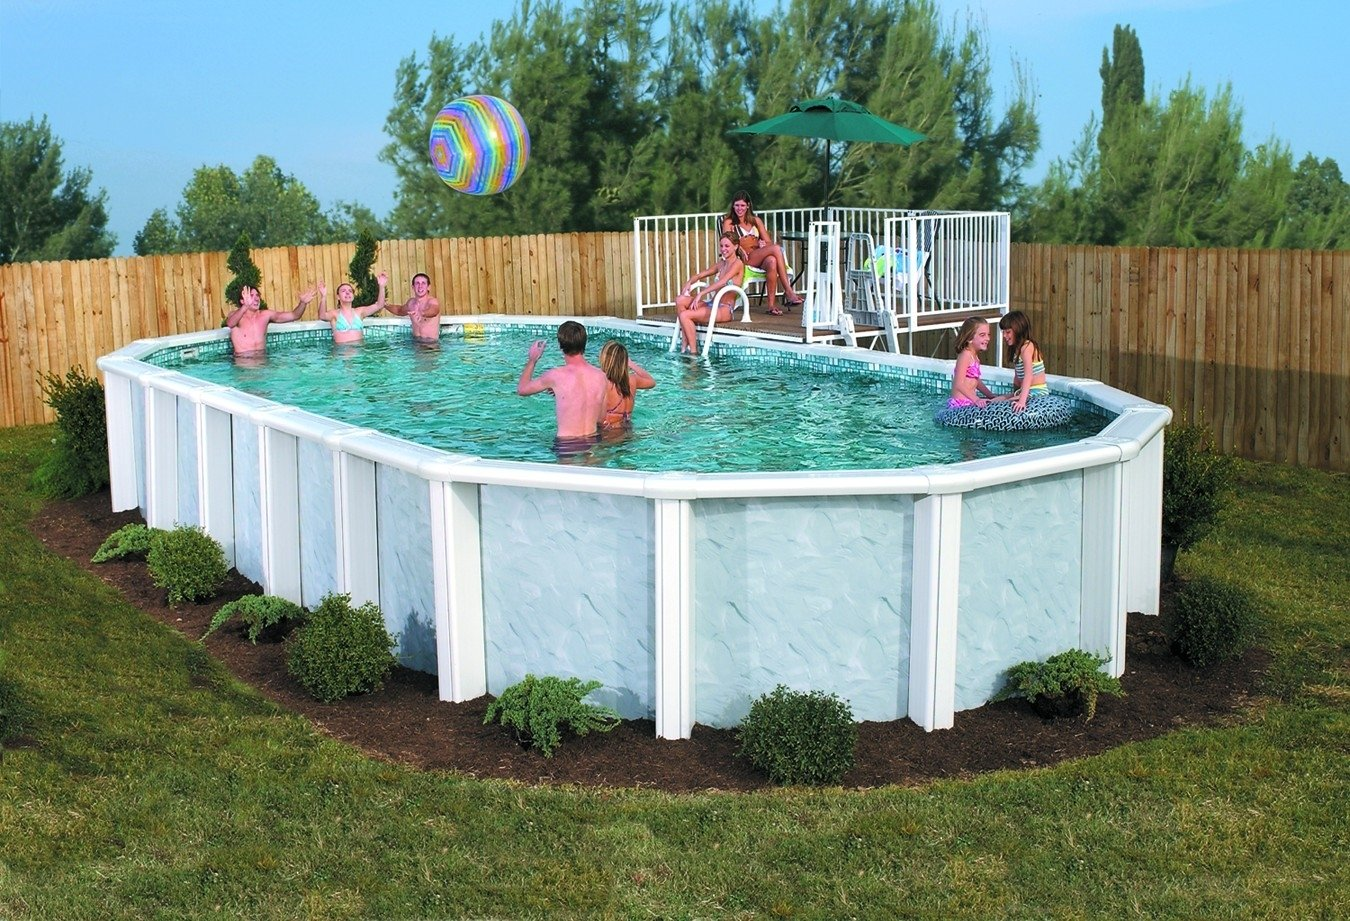 10 Famous Landscaping Ideas For Above Ground Pools about above ground pool ideas trends including landscaping for pools